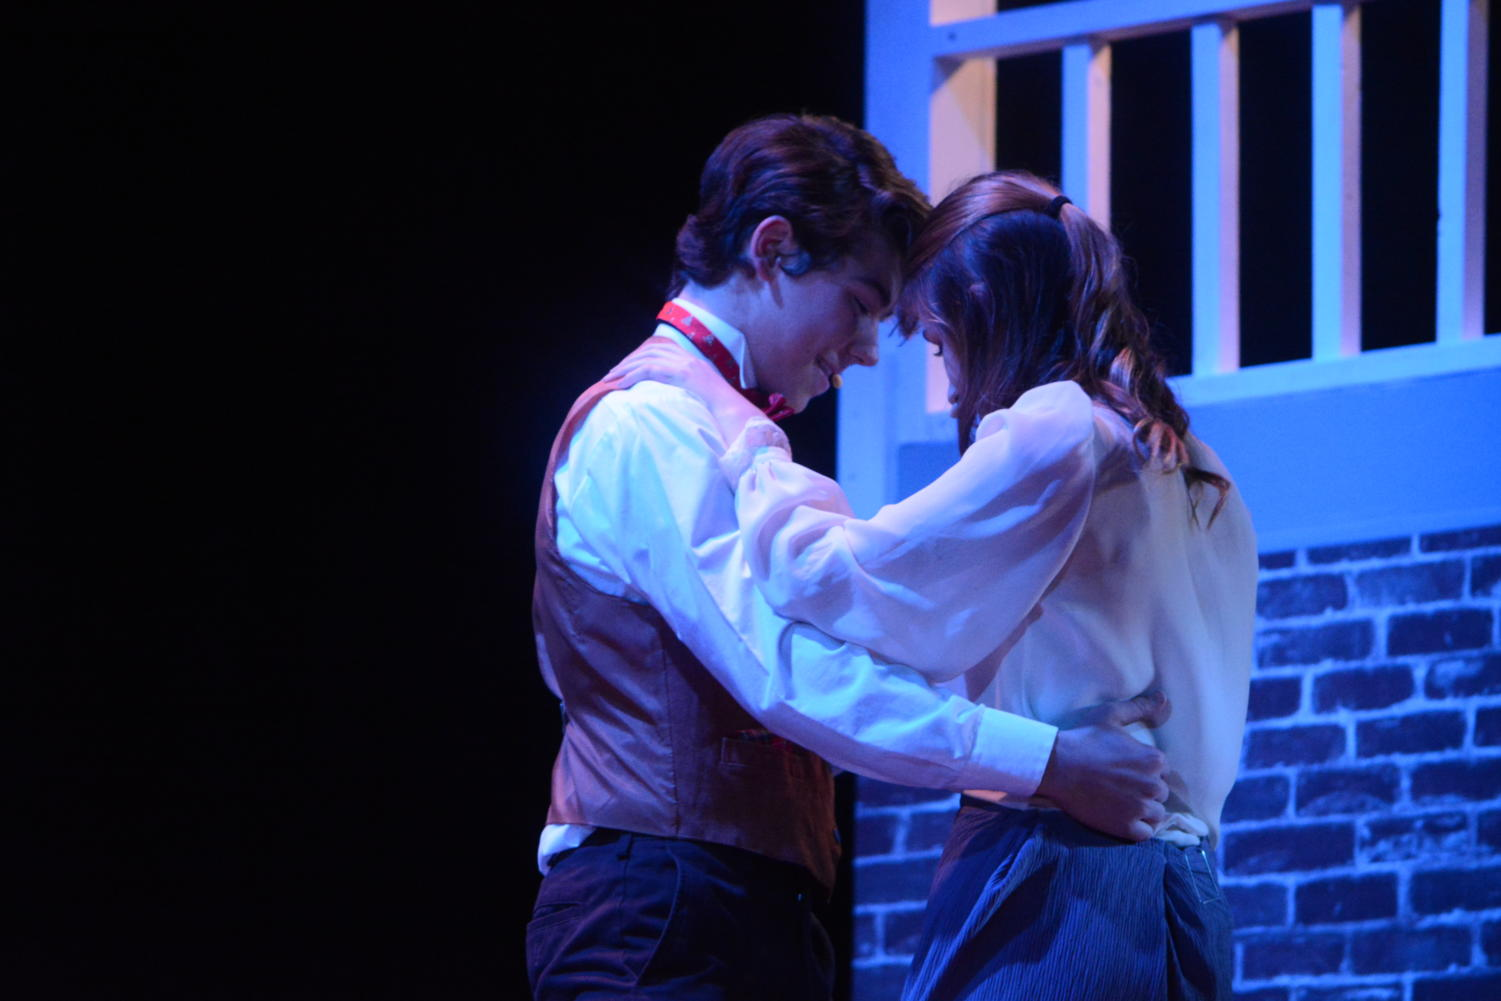 May+I+have+this+dance%3F--+Young+Scrooge%2C+played+by+junior+Evan+Adams+%28left%29%2C+dances+with+Belle%2C+played+by+junior%0AJessie+Clark+%28right%29%2C+during+a+scene+from+Scrooge%E2%80%99s+past.+This+is+Adams%E2%80%99+first+production+at+the+high+school.